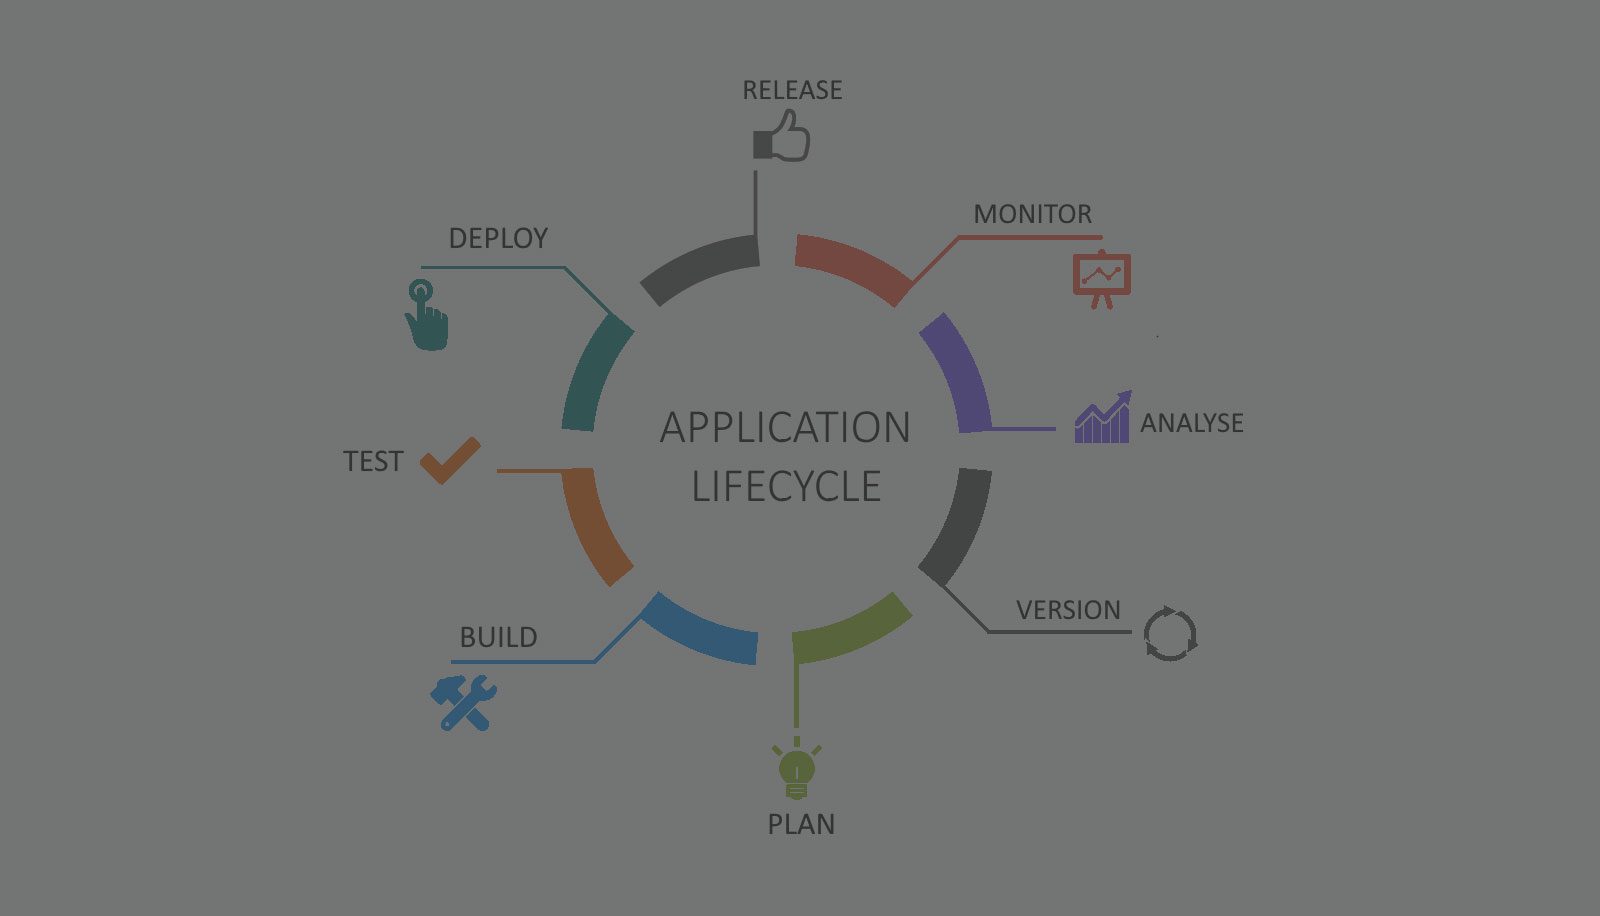 Top Business Benefits of Application Lifecycle Management